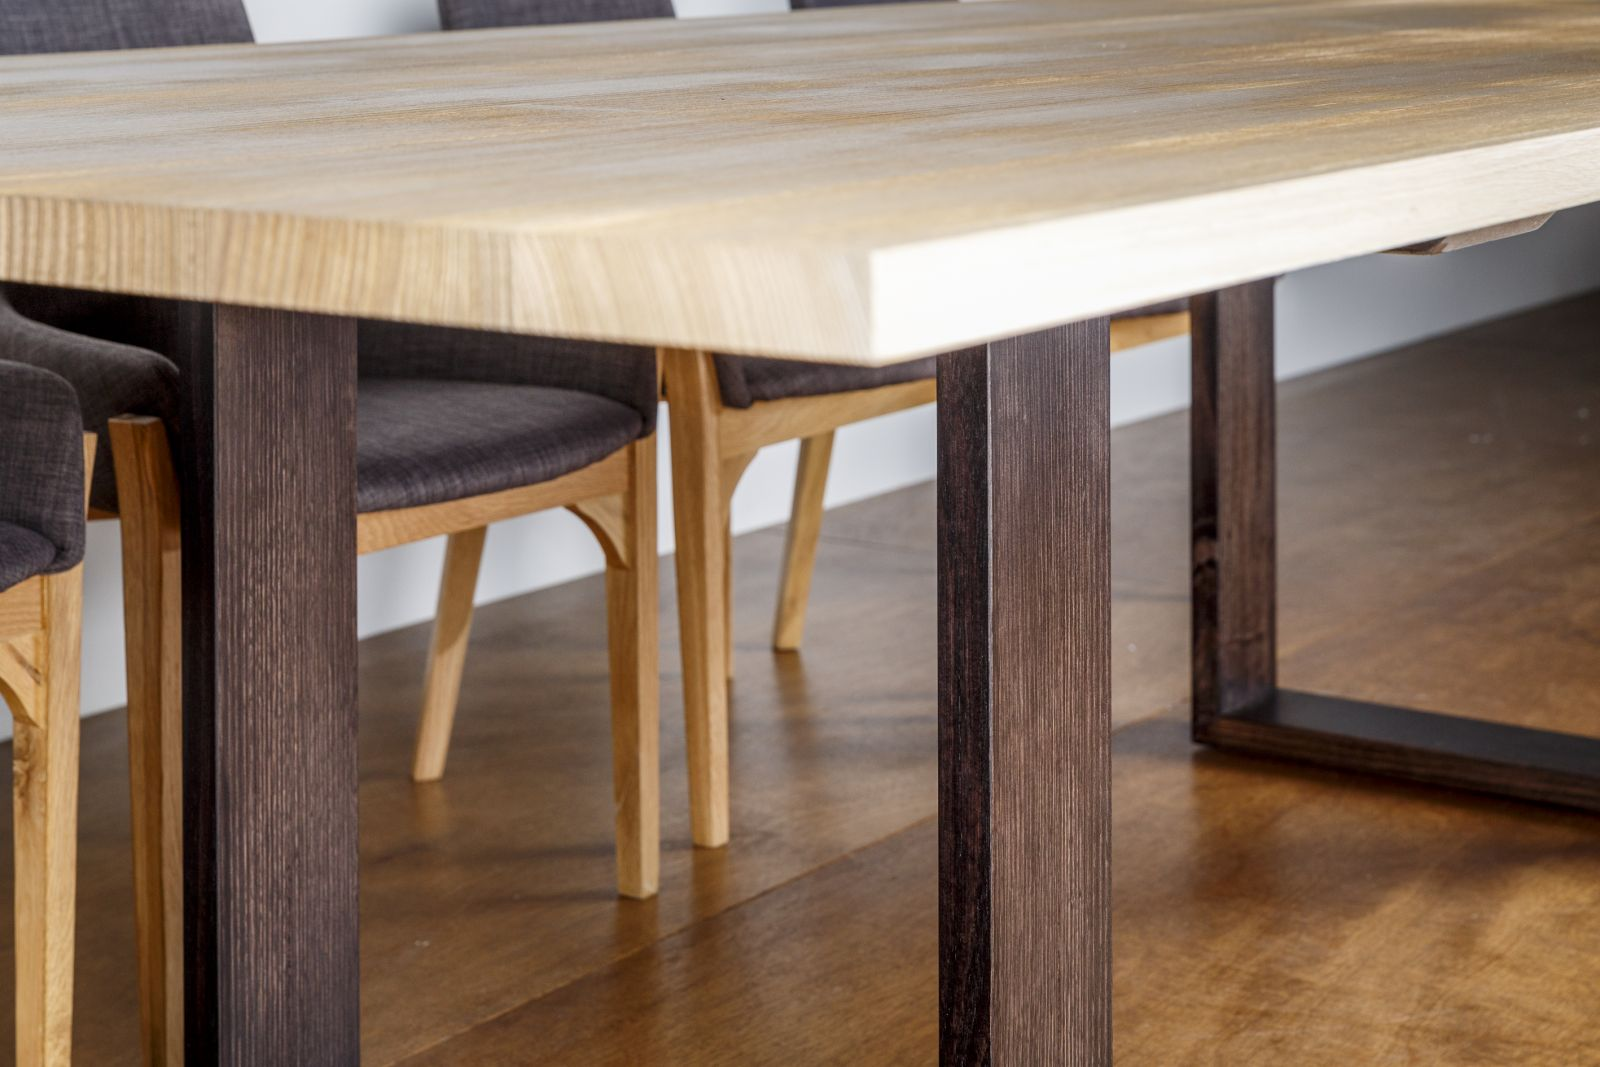 Sandblasted Dining Table - The Wembley with dining chairs